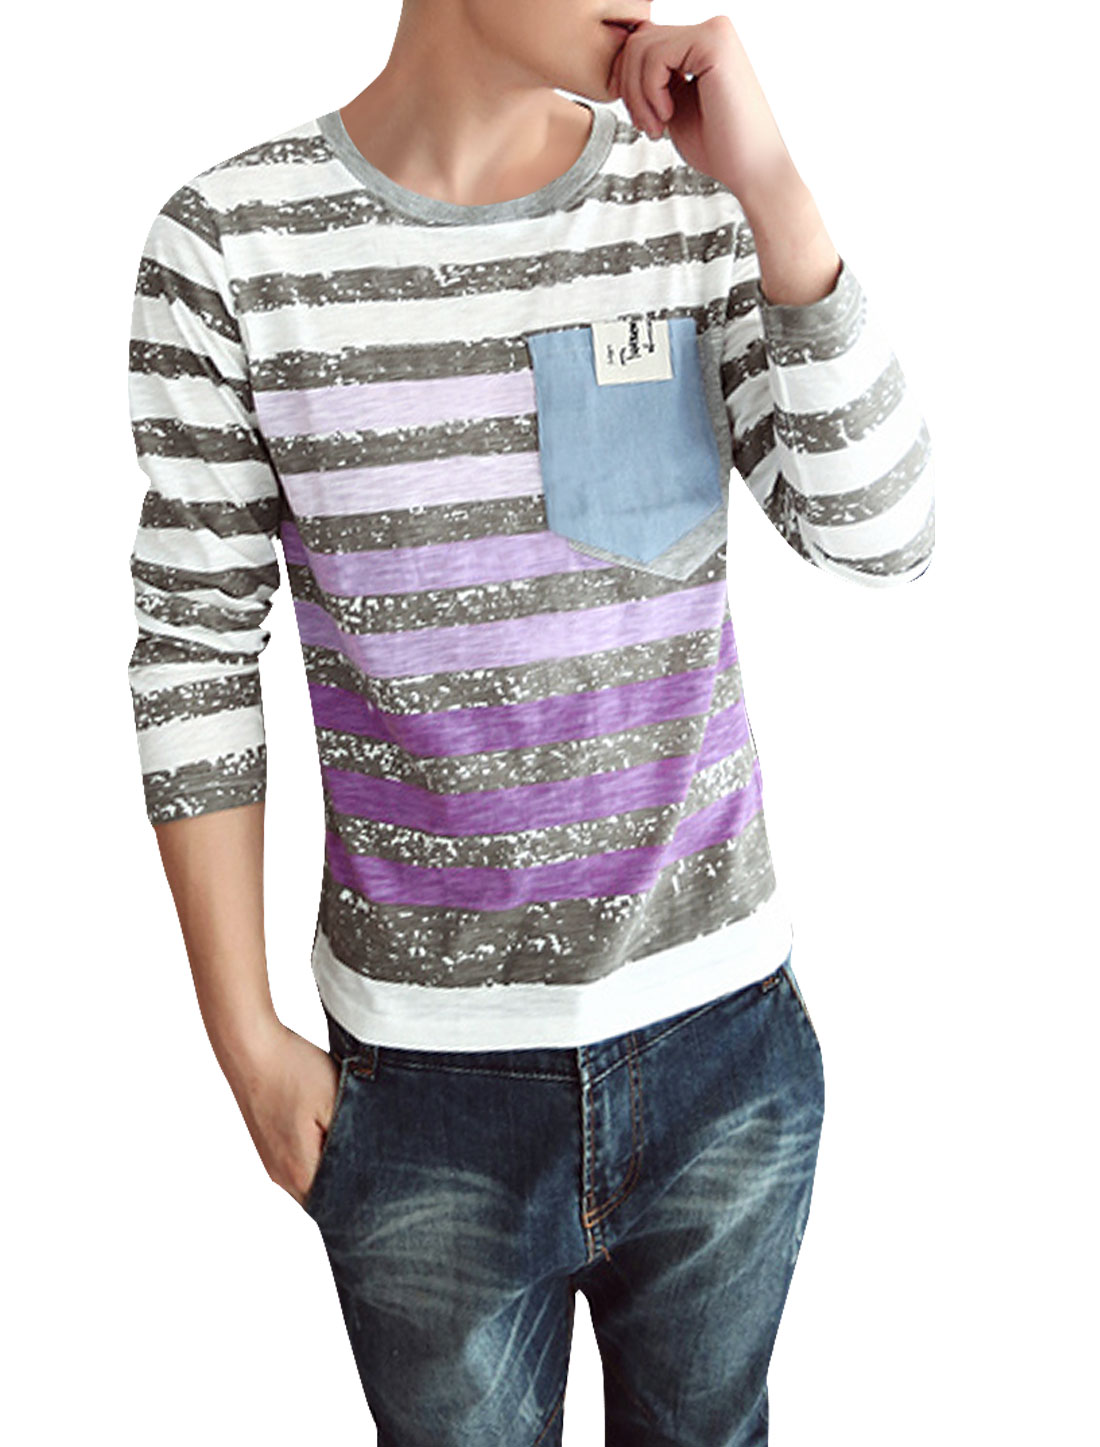 Man Stylish Chest Patch Pockets Light Gray Purple Striped T-Shirt S